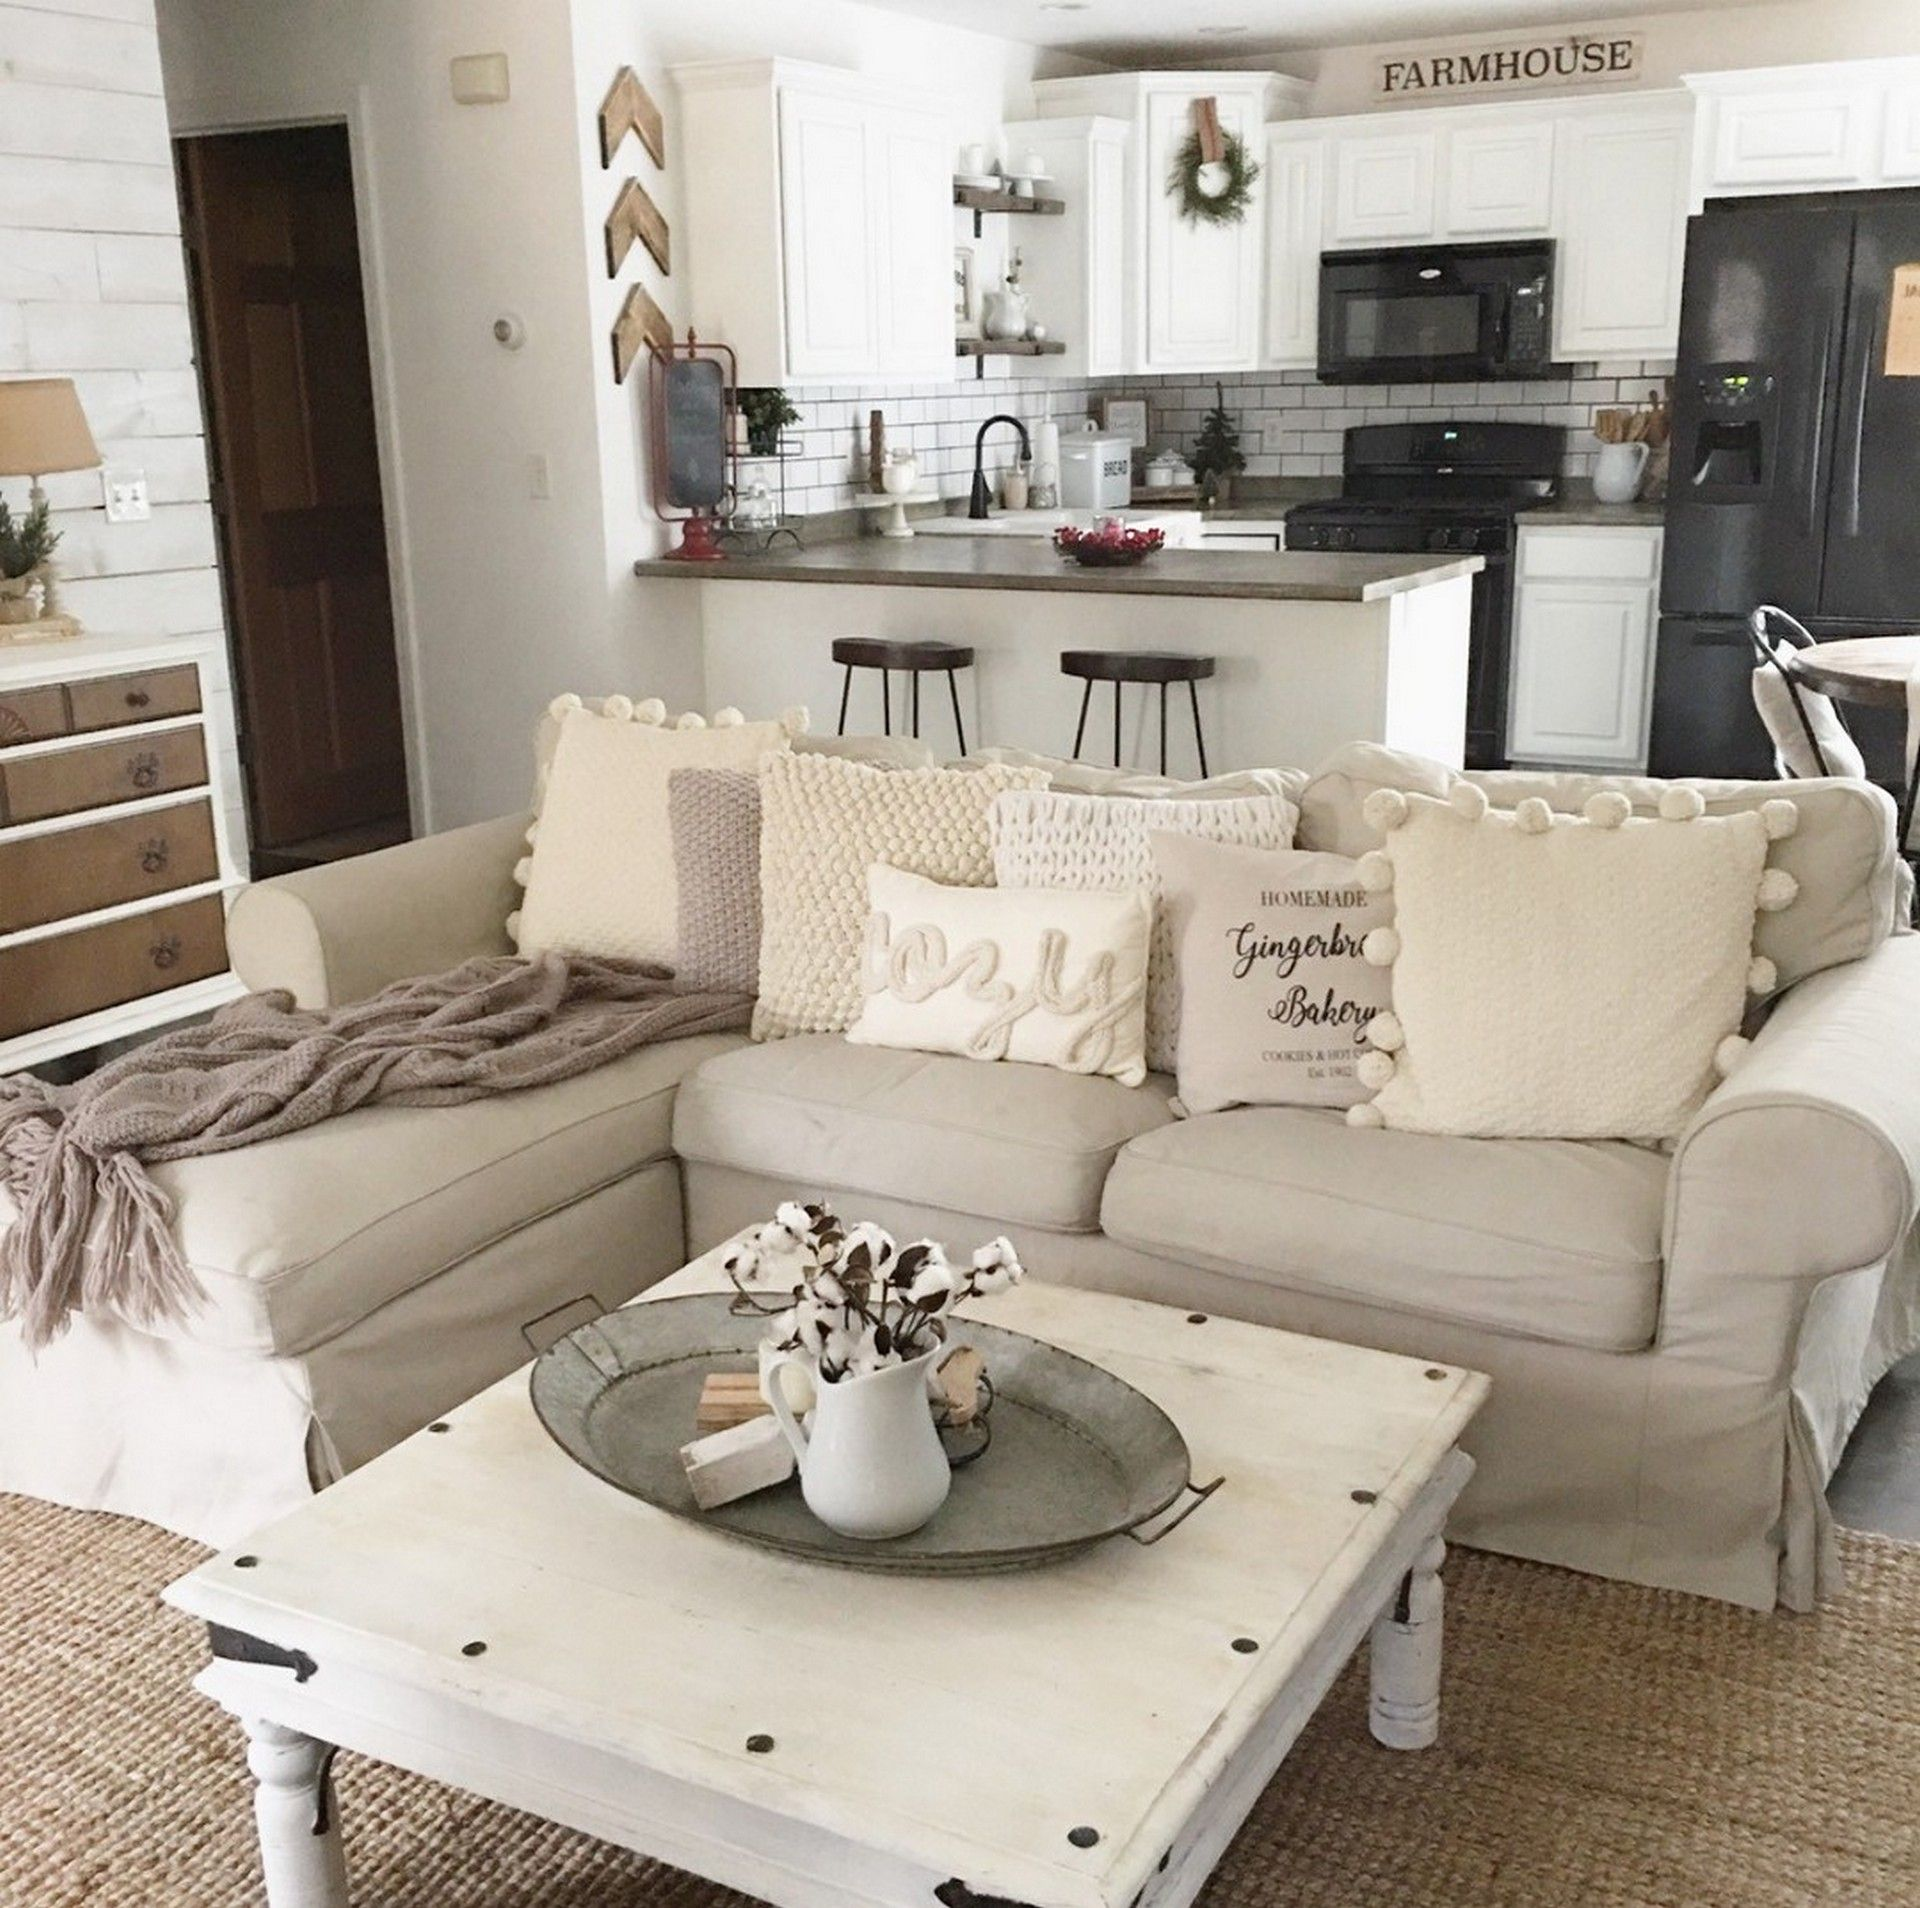 Awesome 99 Cheap And Simple Apartement Decorating Ideas Httpdc Fair Living Room Simple Decorating Ideas 2018